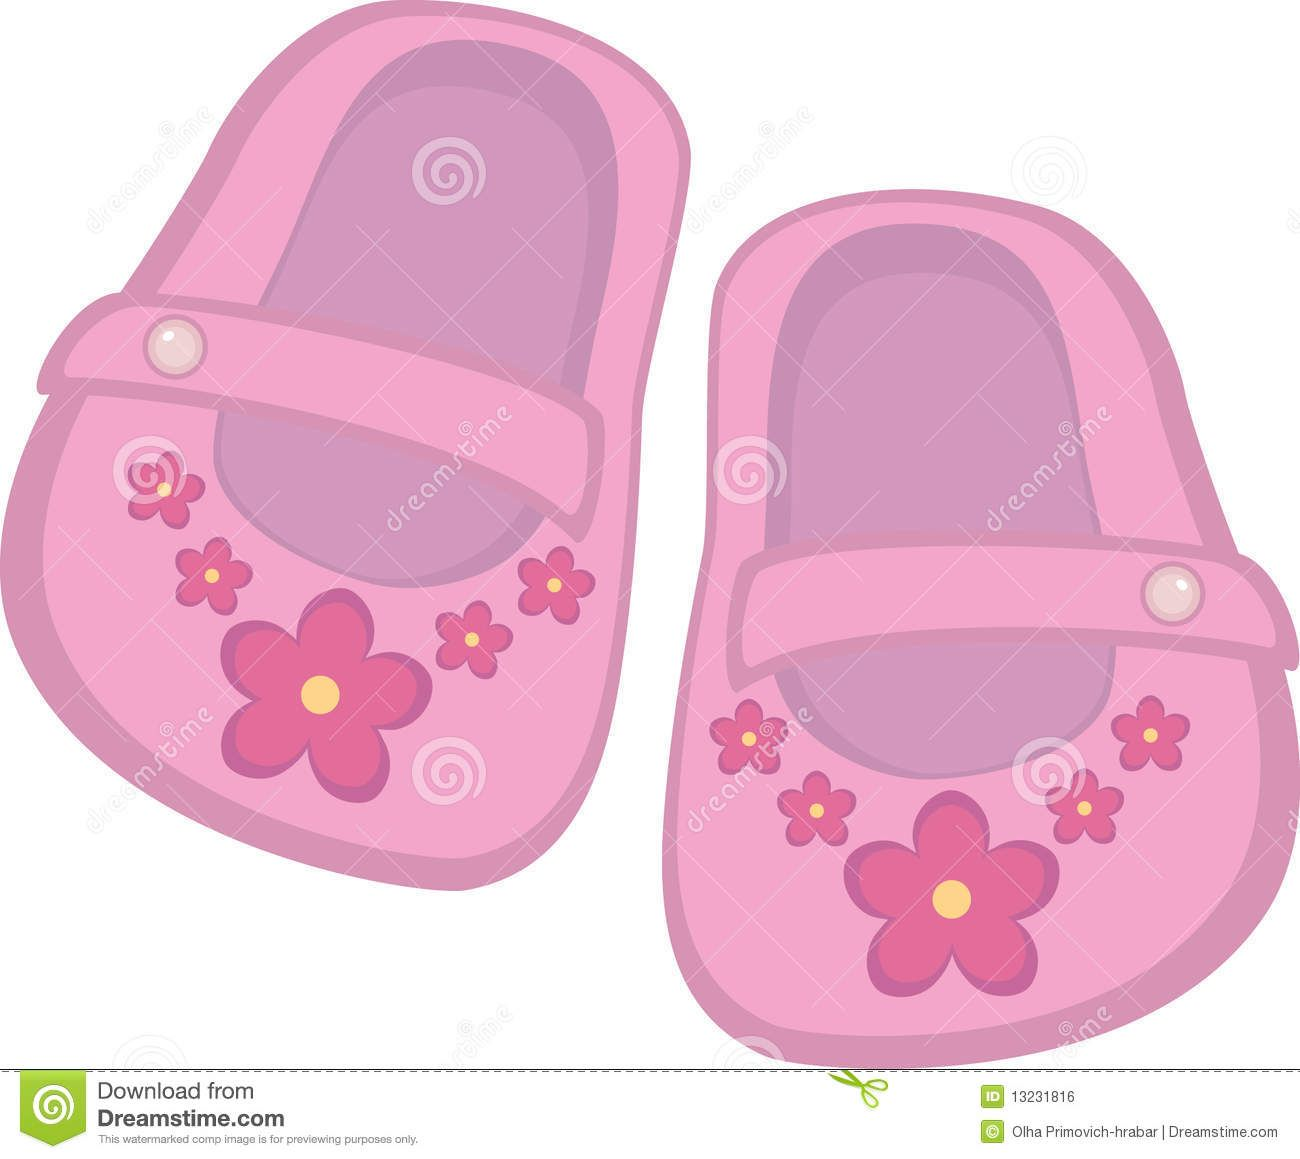 Baby Girl Shoes Pink Baby Girl Shoes With Flowers Sponsored Girl Baby Baby Flowers Shoes In 2021 Baby Clip Art Shoes Clipart Baby Shoe Storage